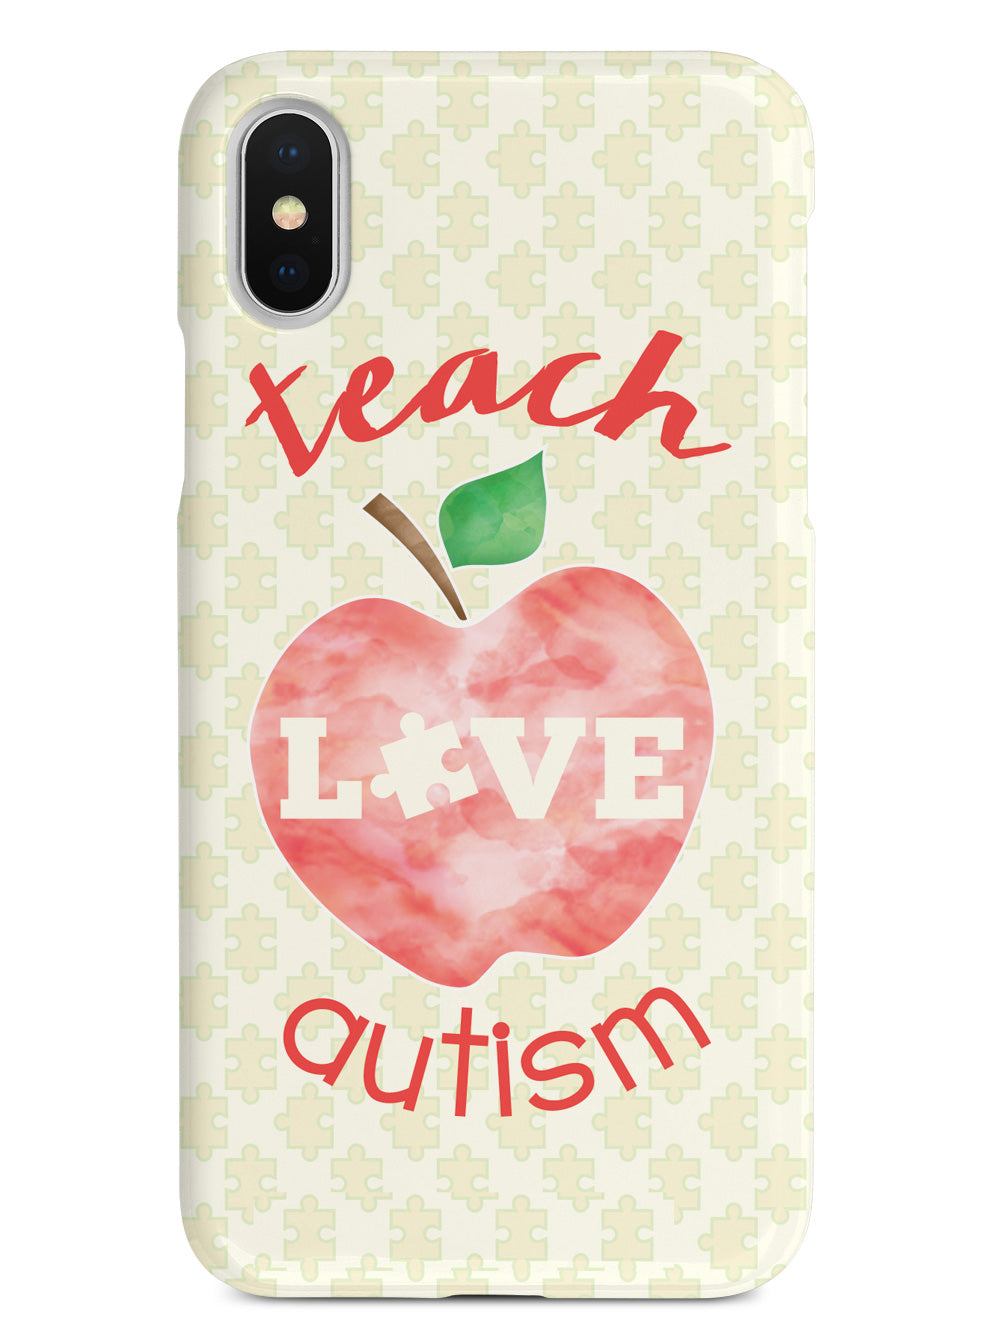 Teach Love Autism Case